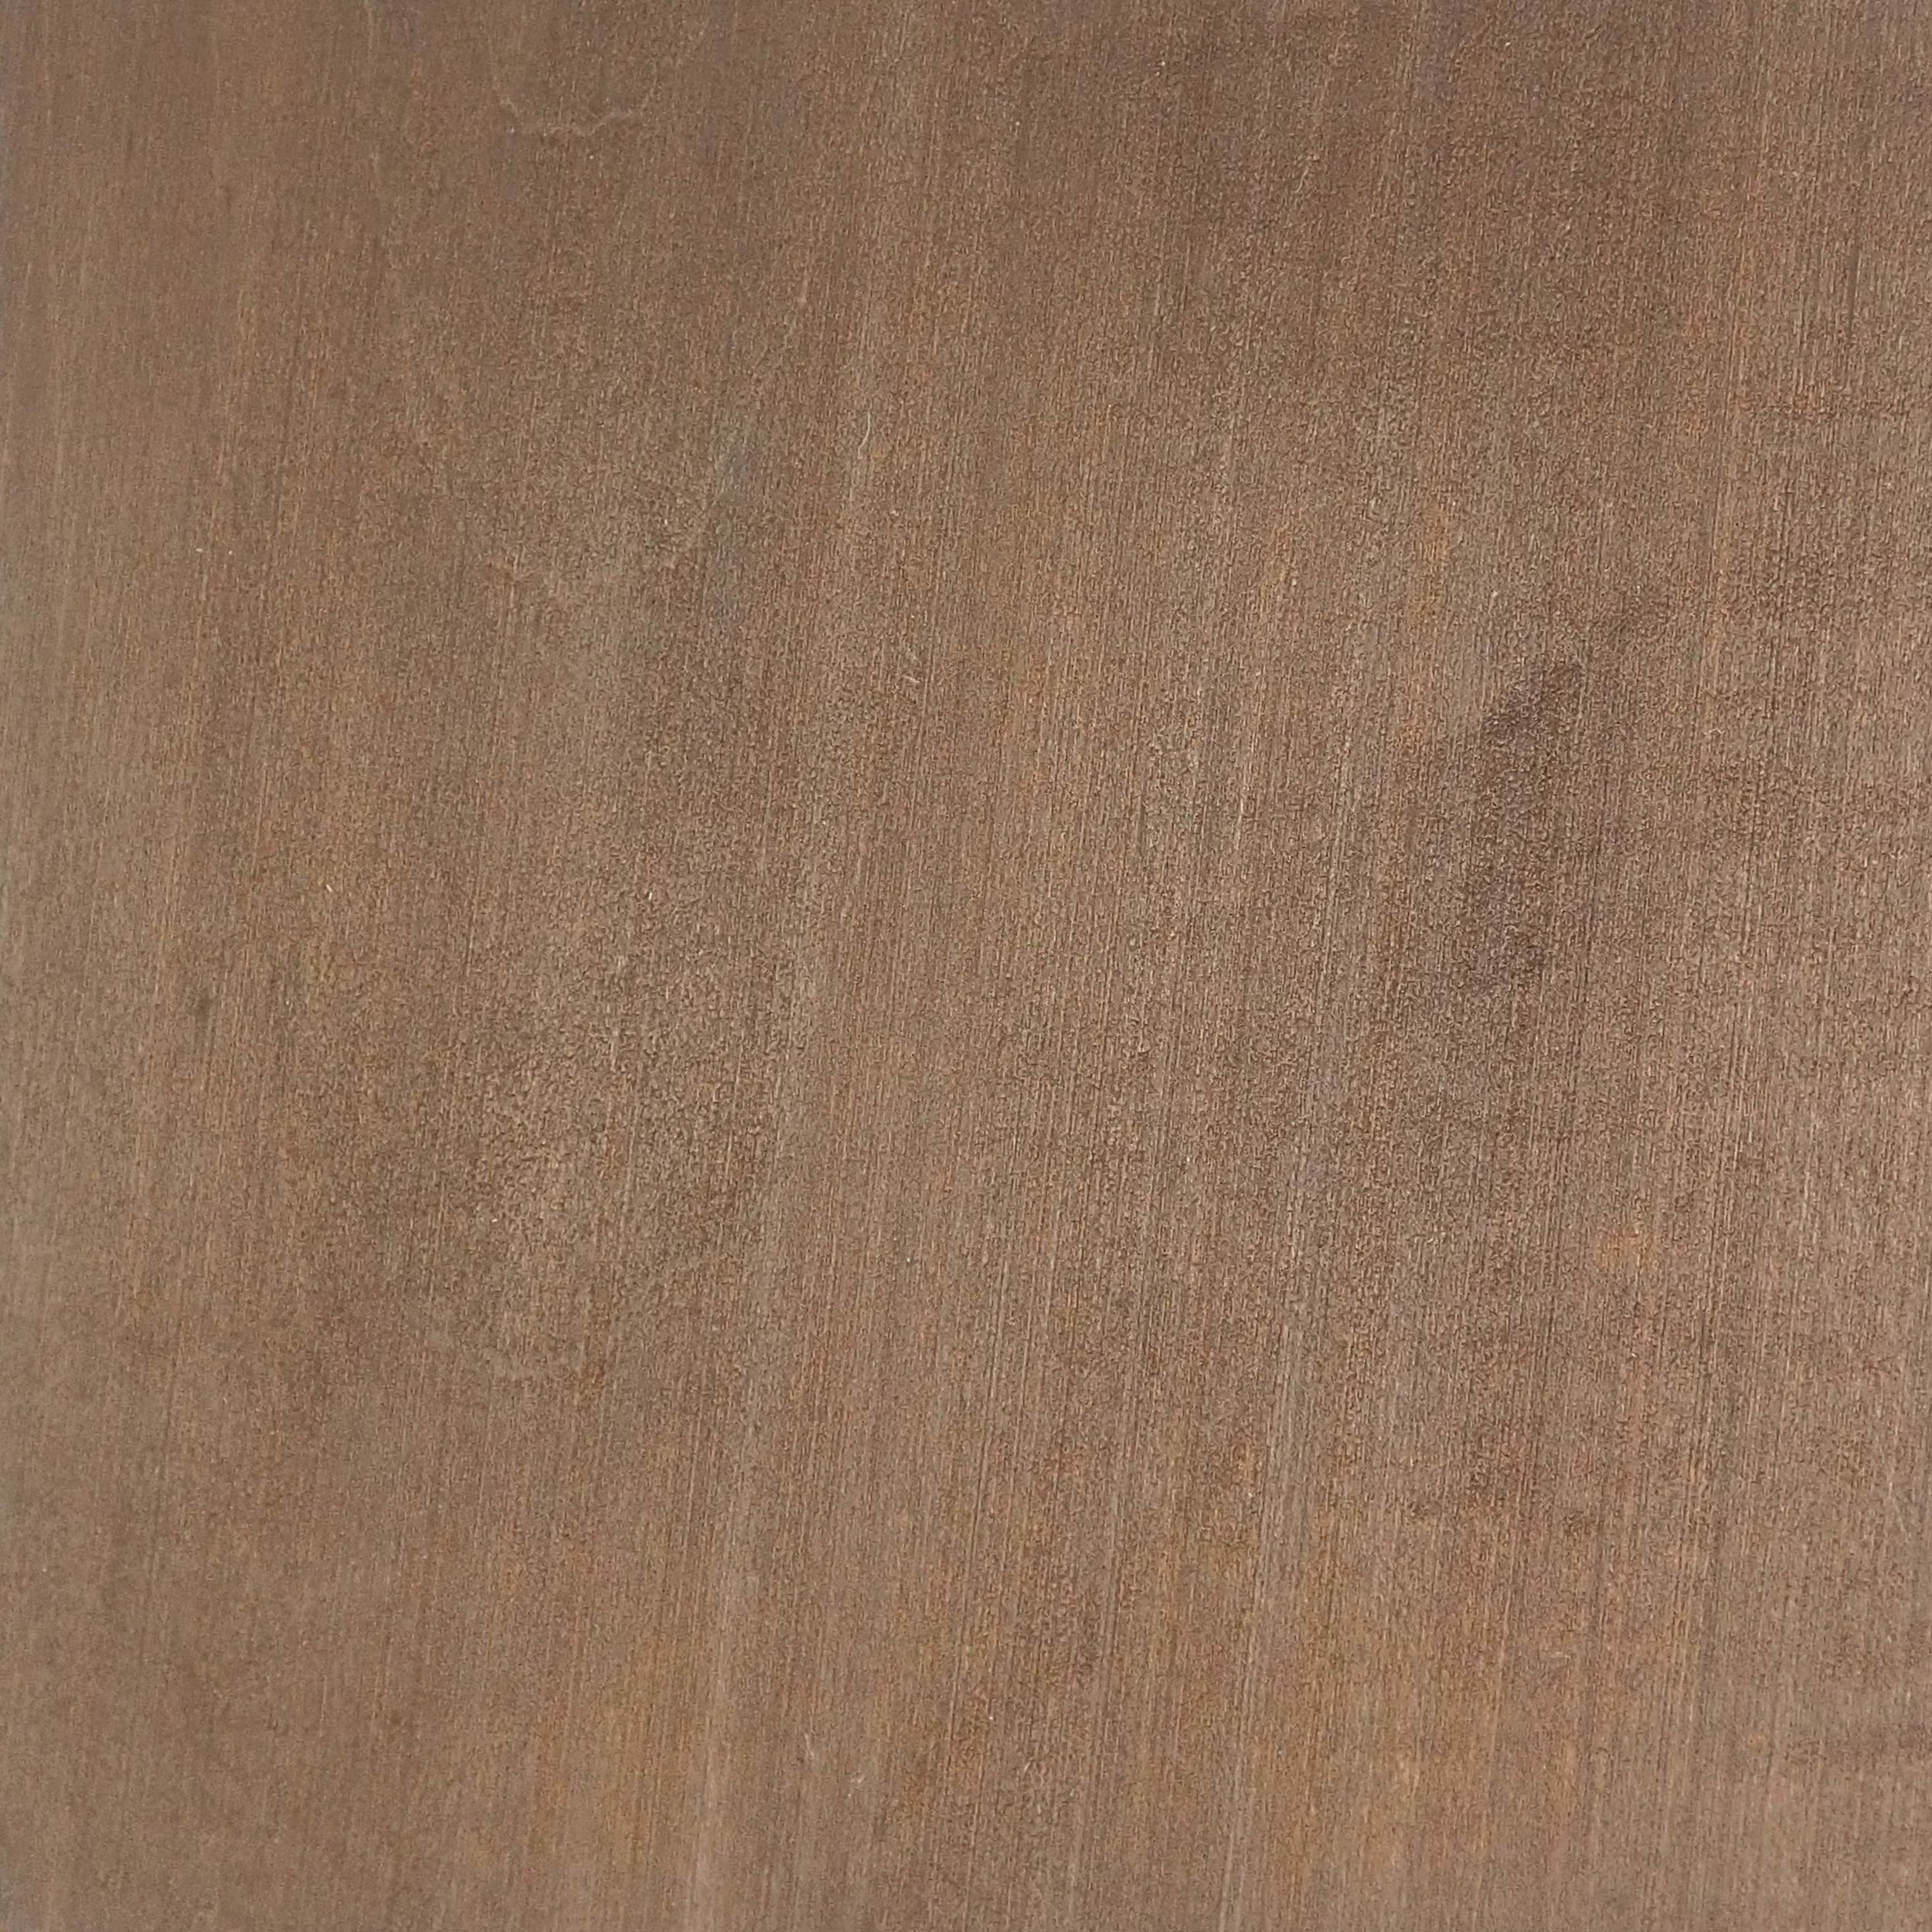 Walnut, Dark